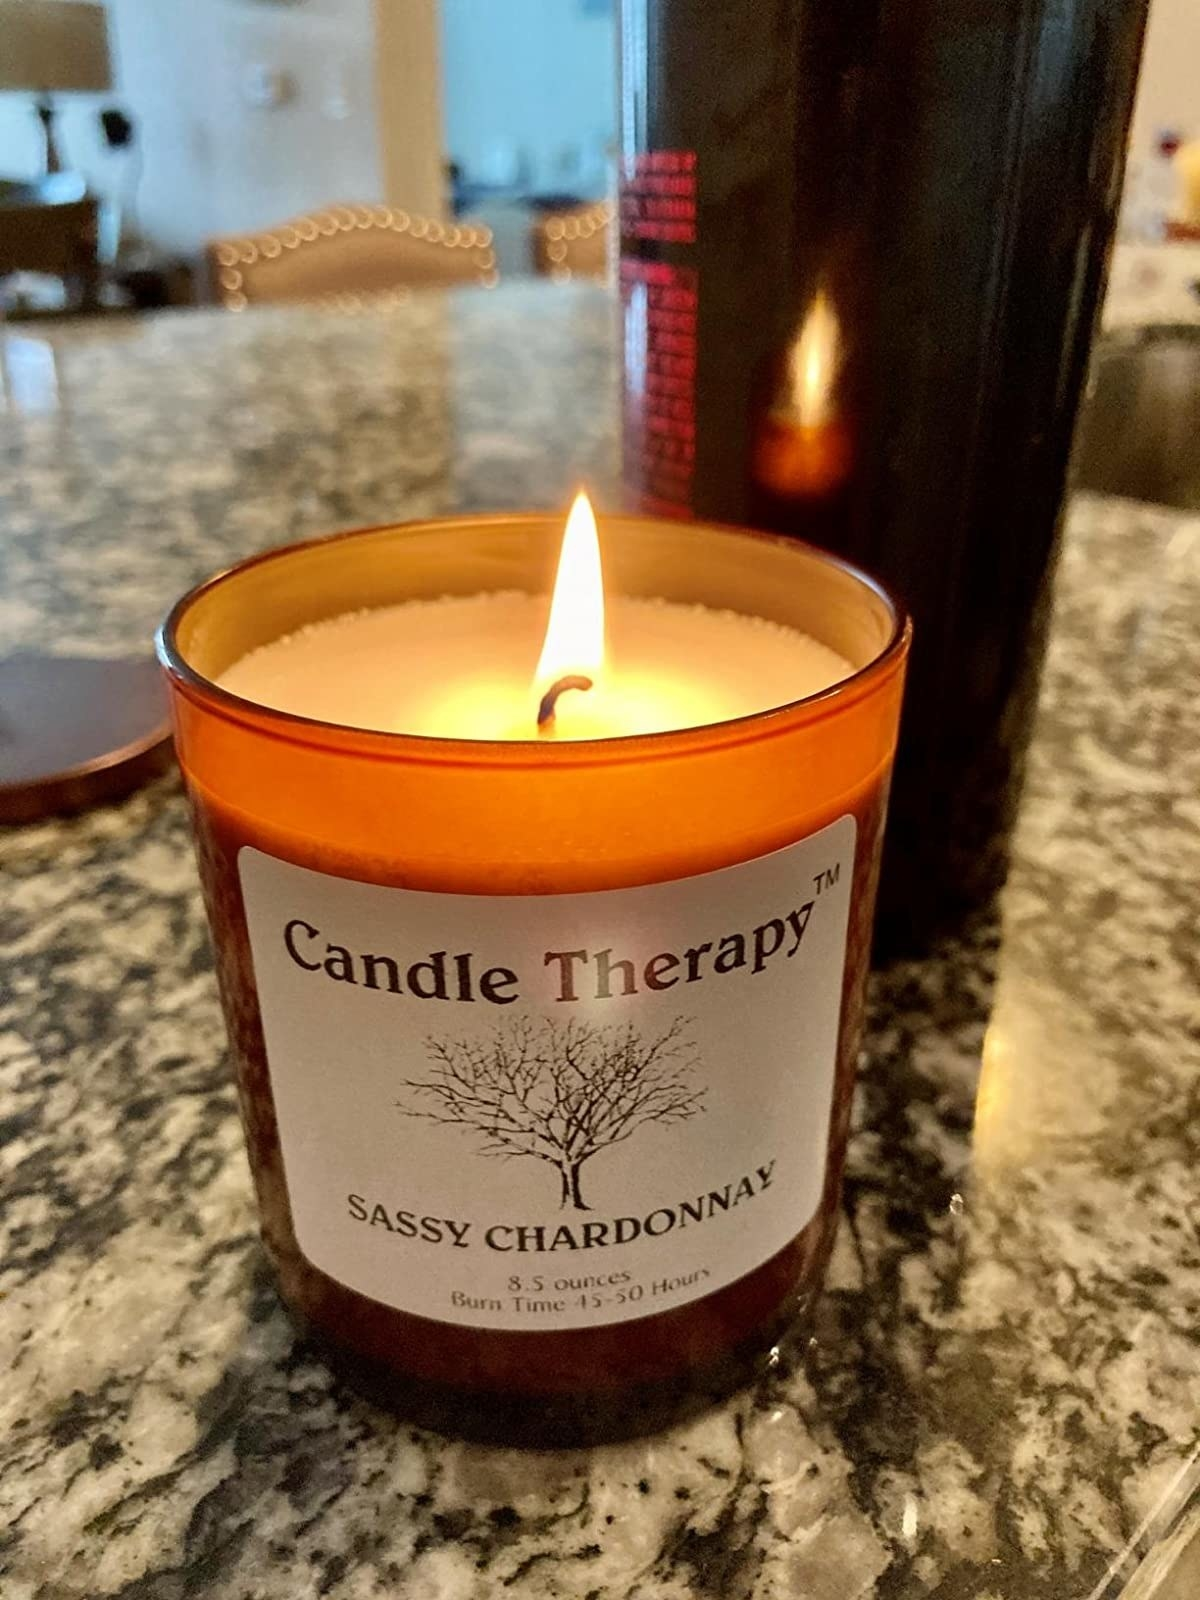 reviewer image of their sassy chardonnay candle burning